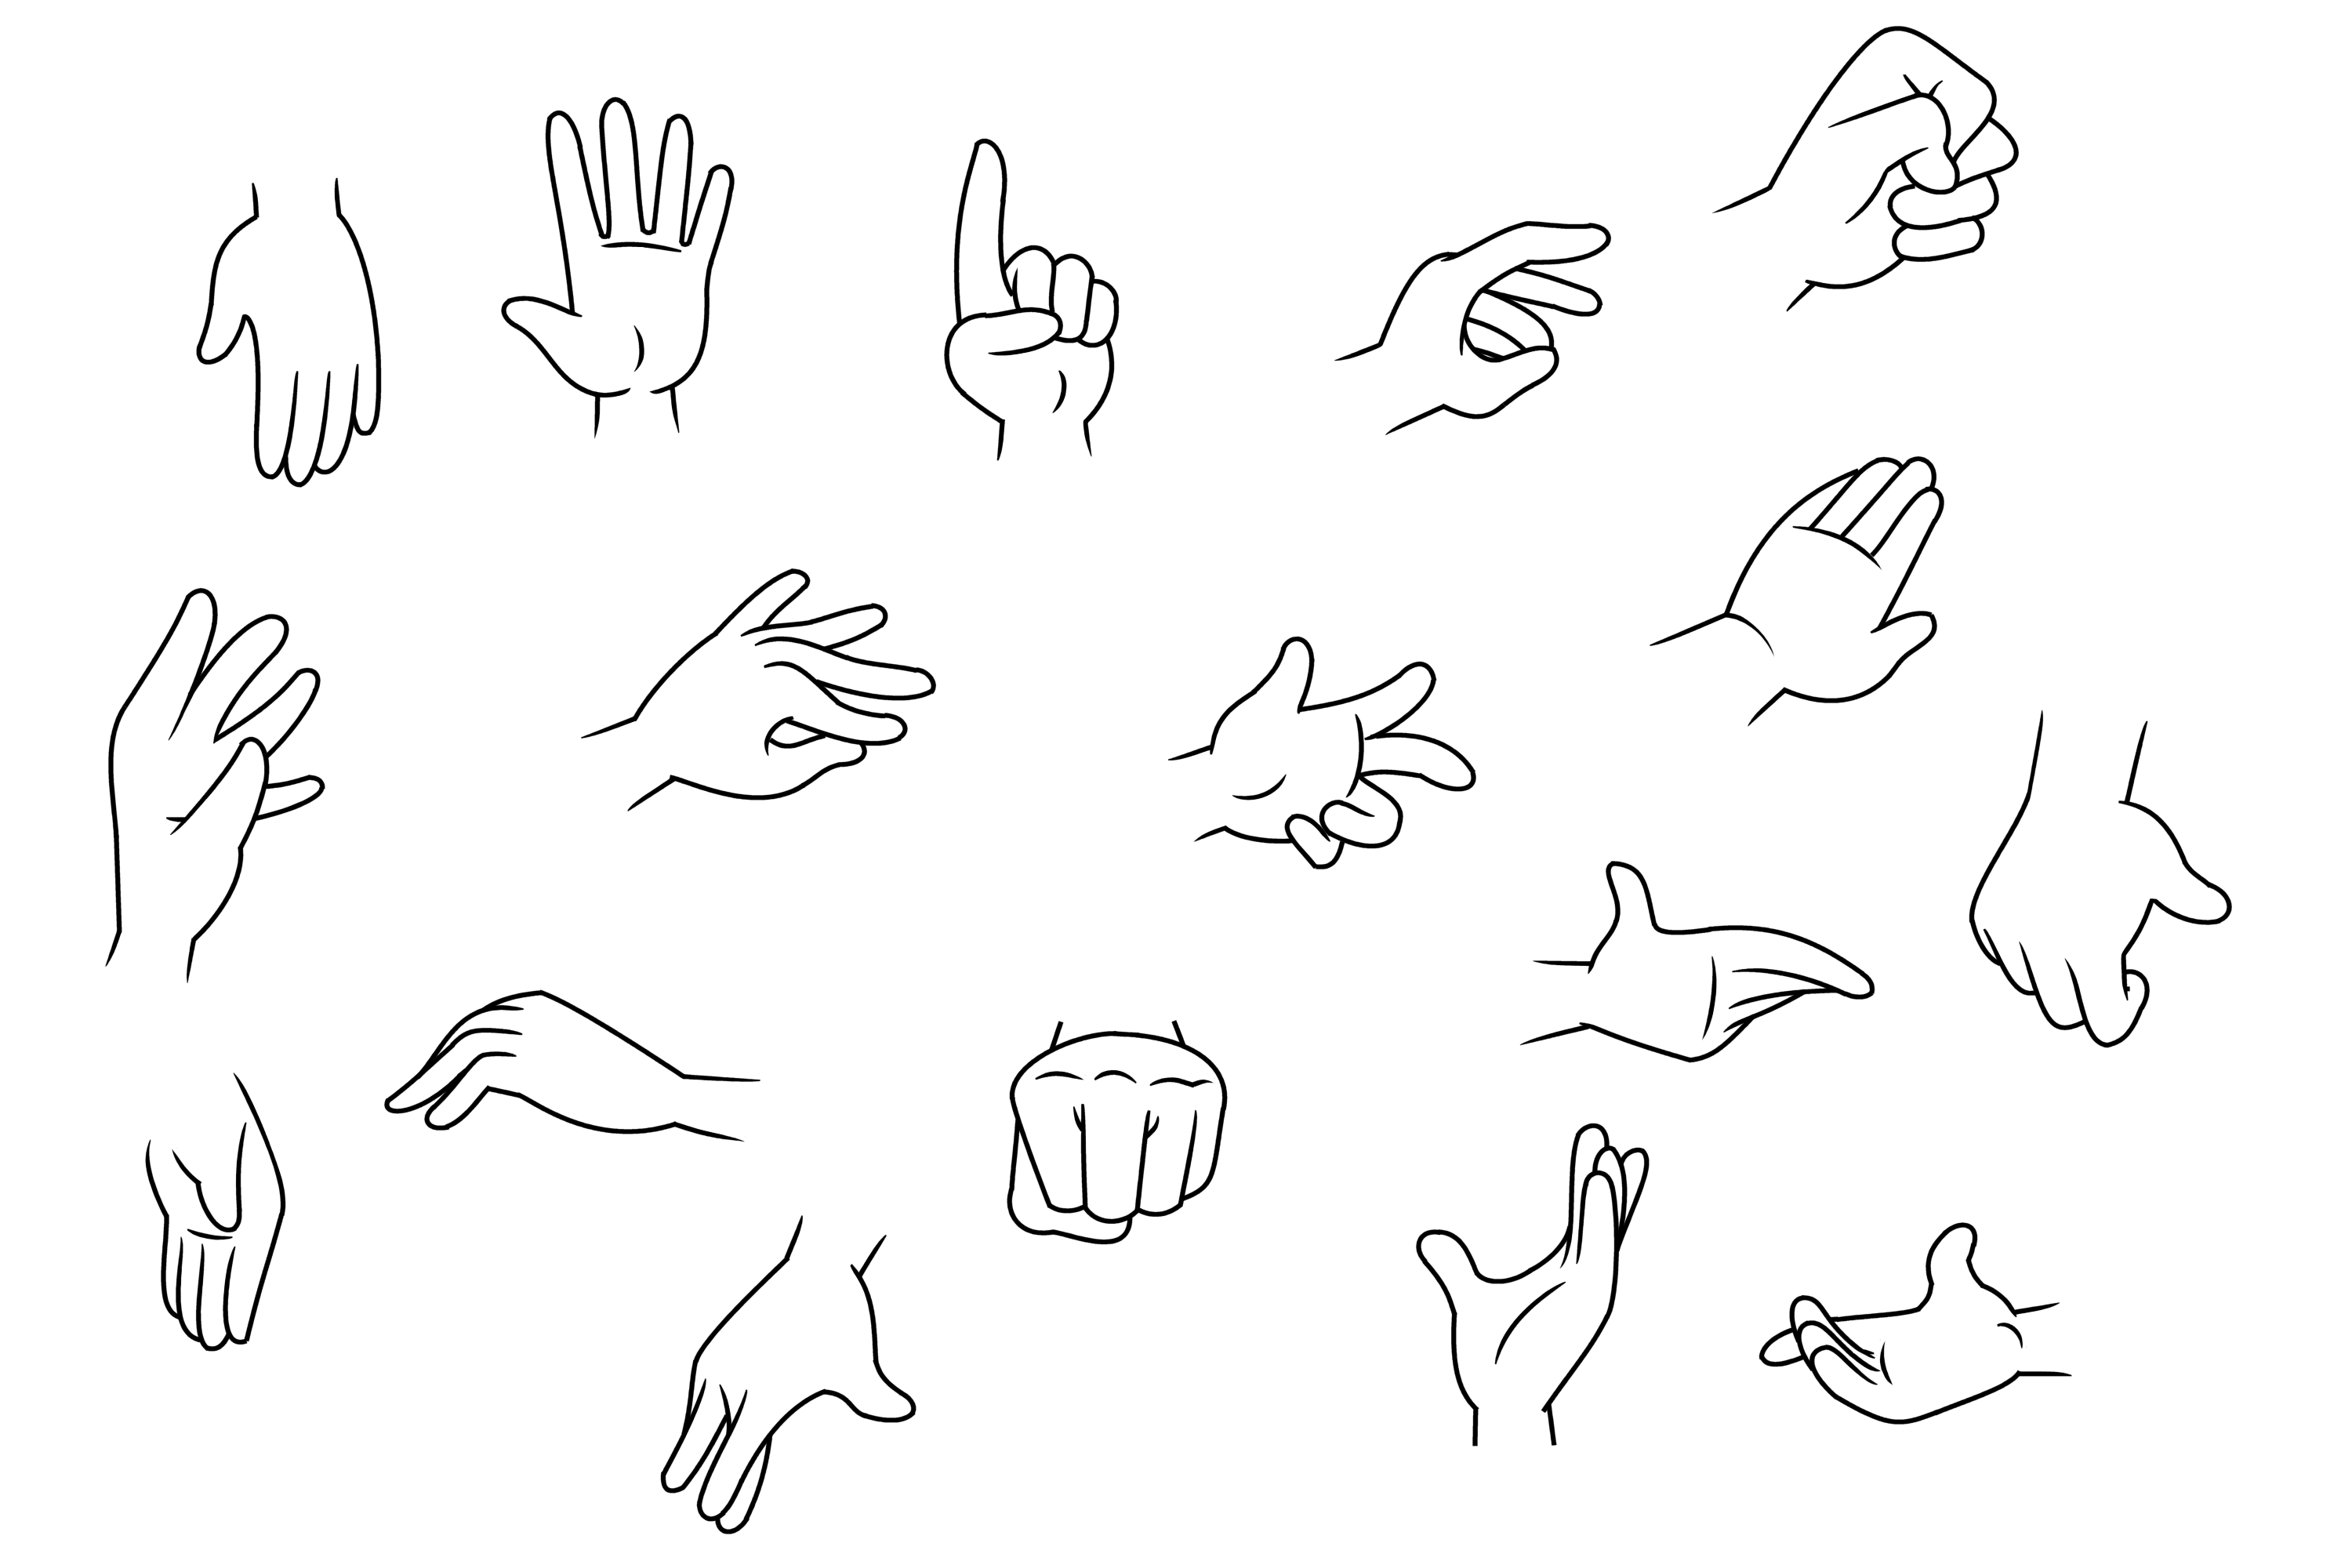 How To Draw Anime Hands Google Search  Drawing  Pinterest  Anime, Google  Search And Google